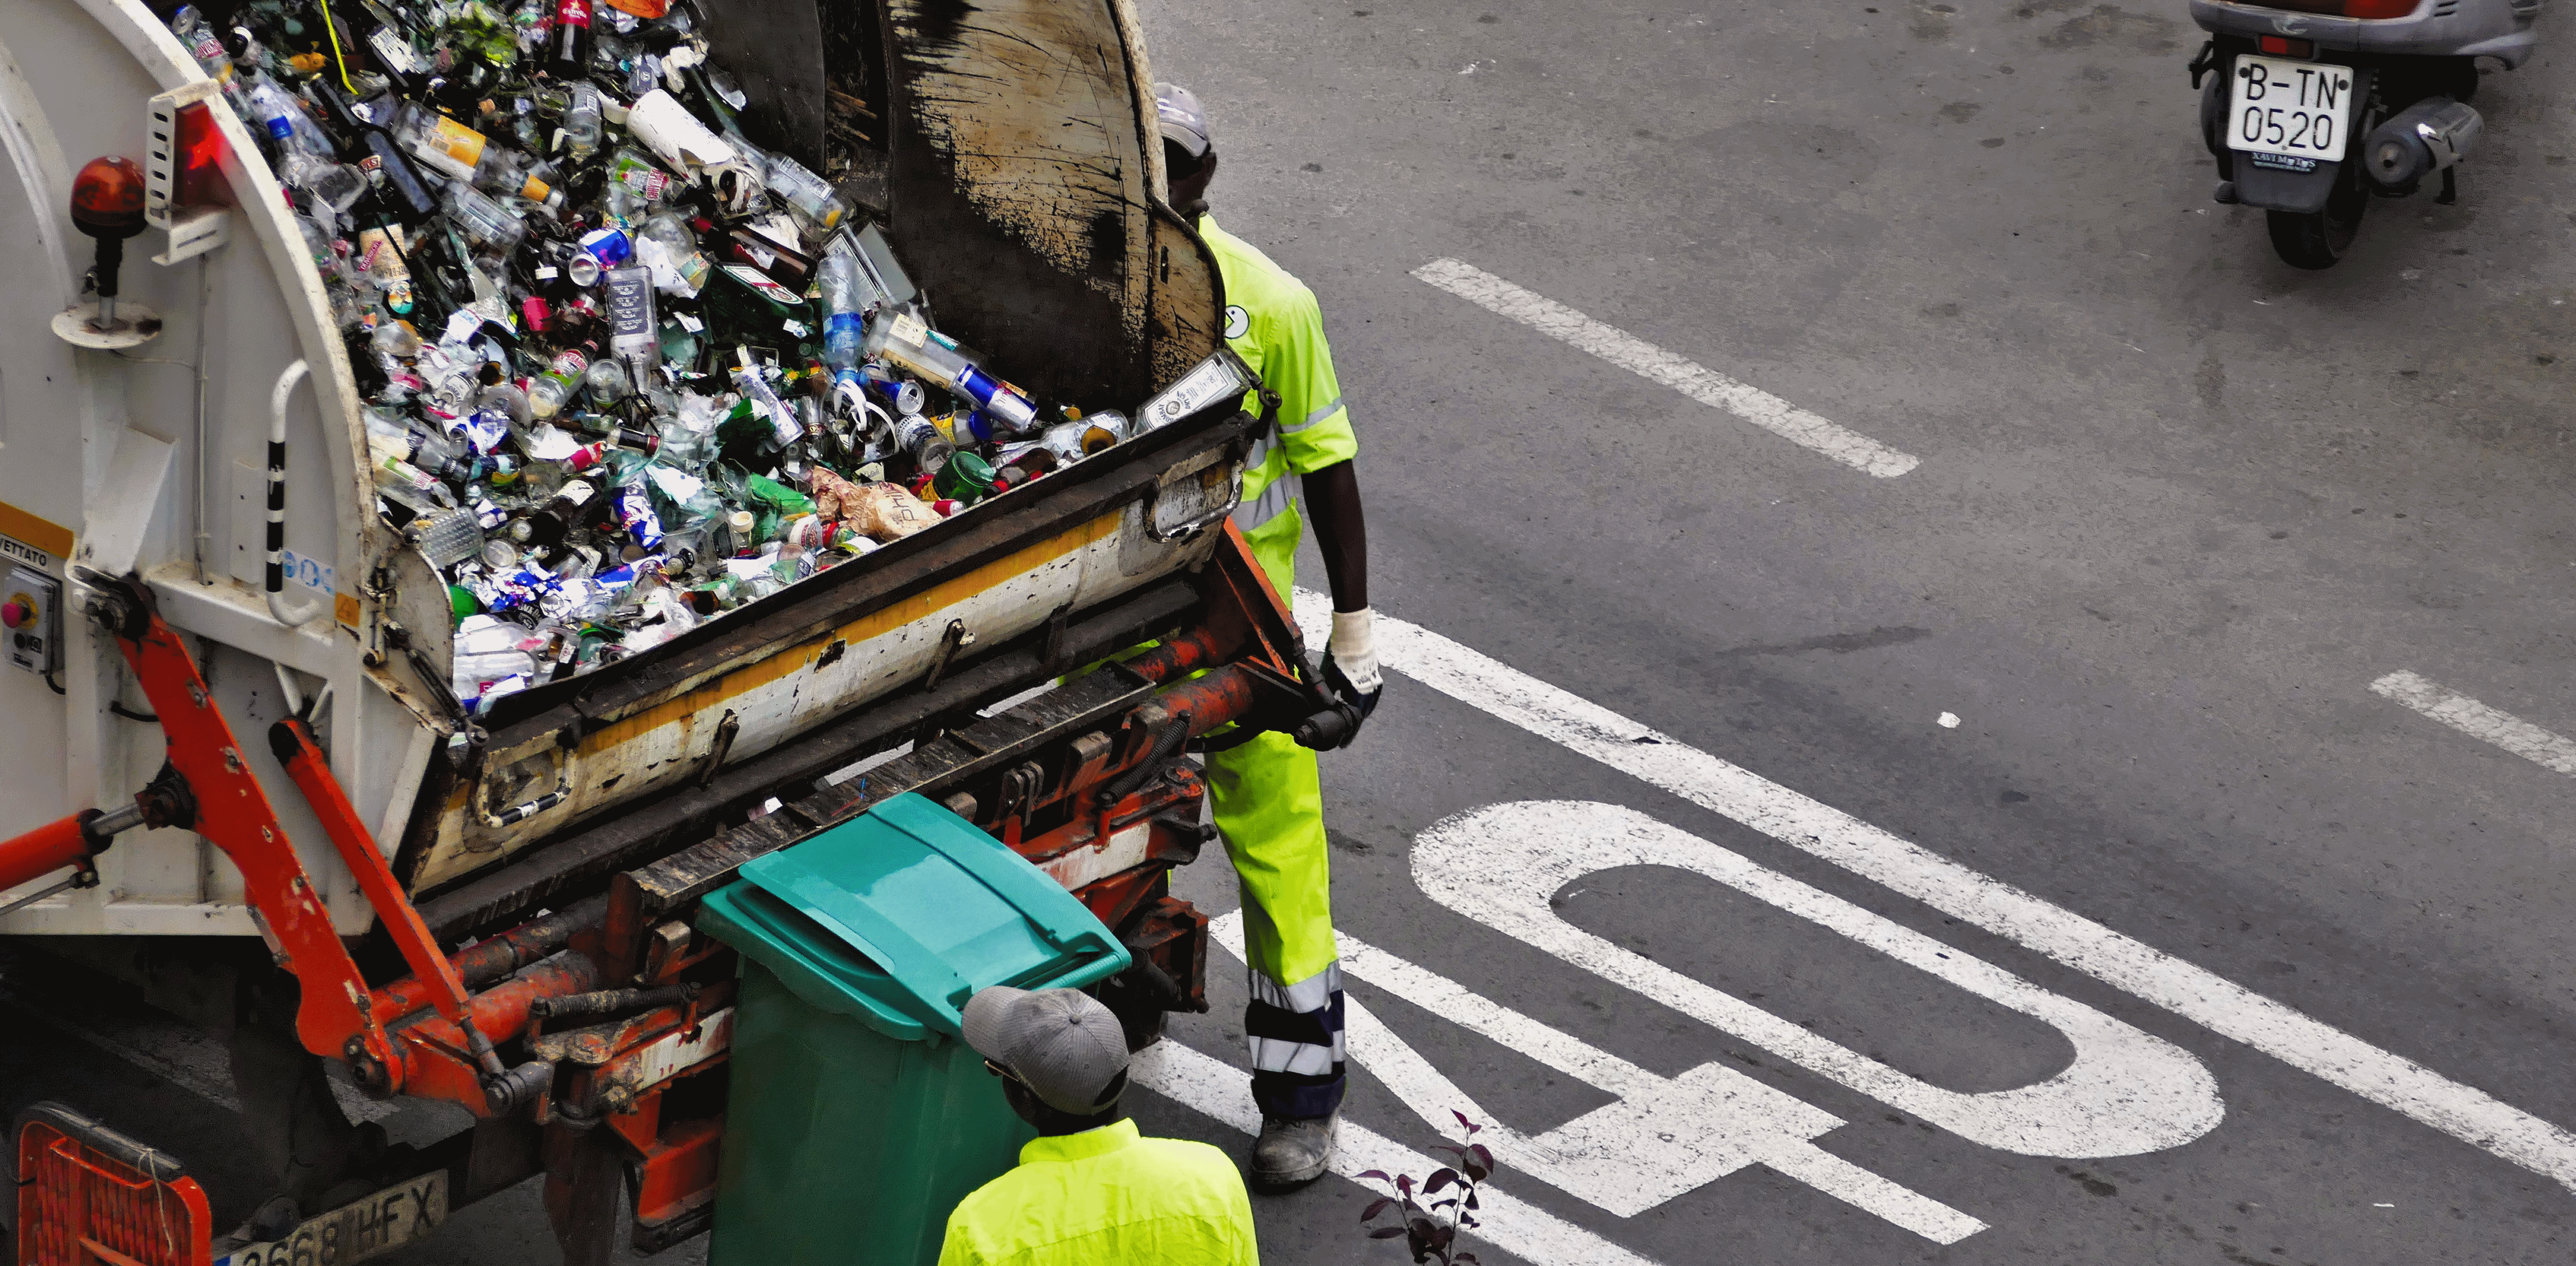 trash hauling and recycling options for sustainability